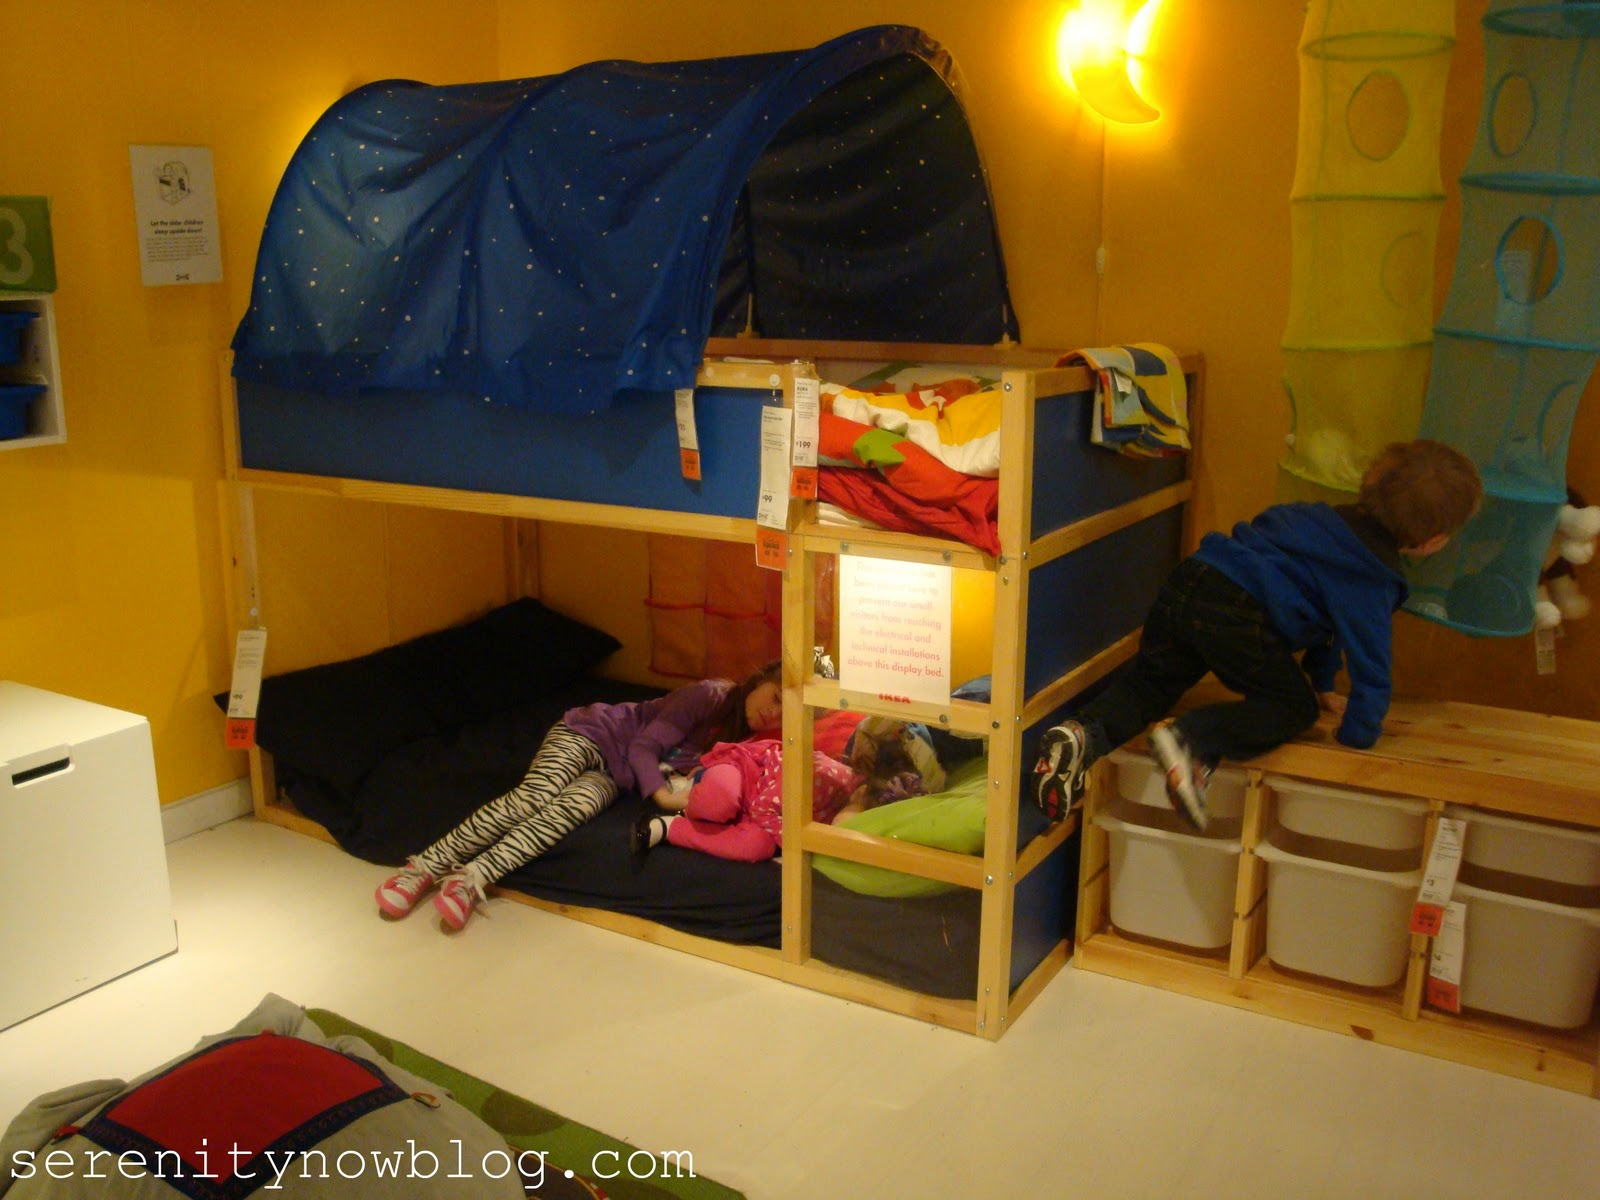 Serenity now ikea decorating inspiration our shopping fun - Ikea bunk bed room ideas ...